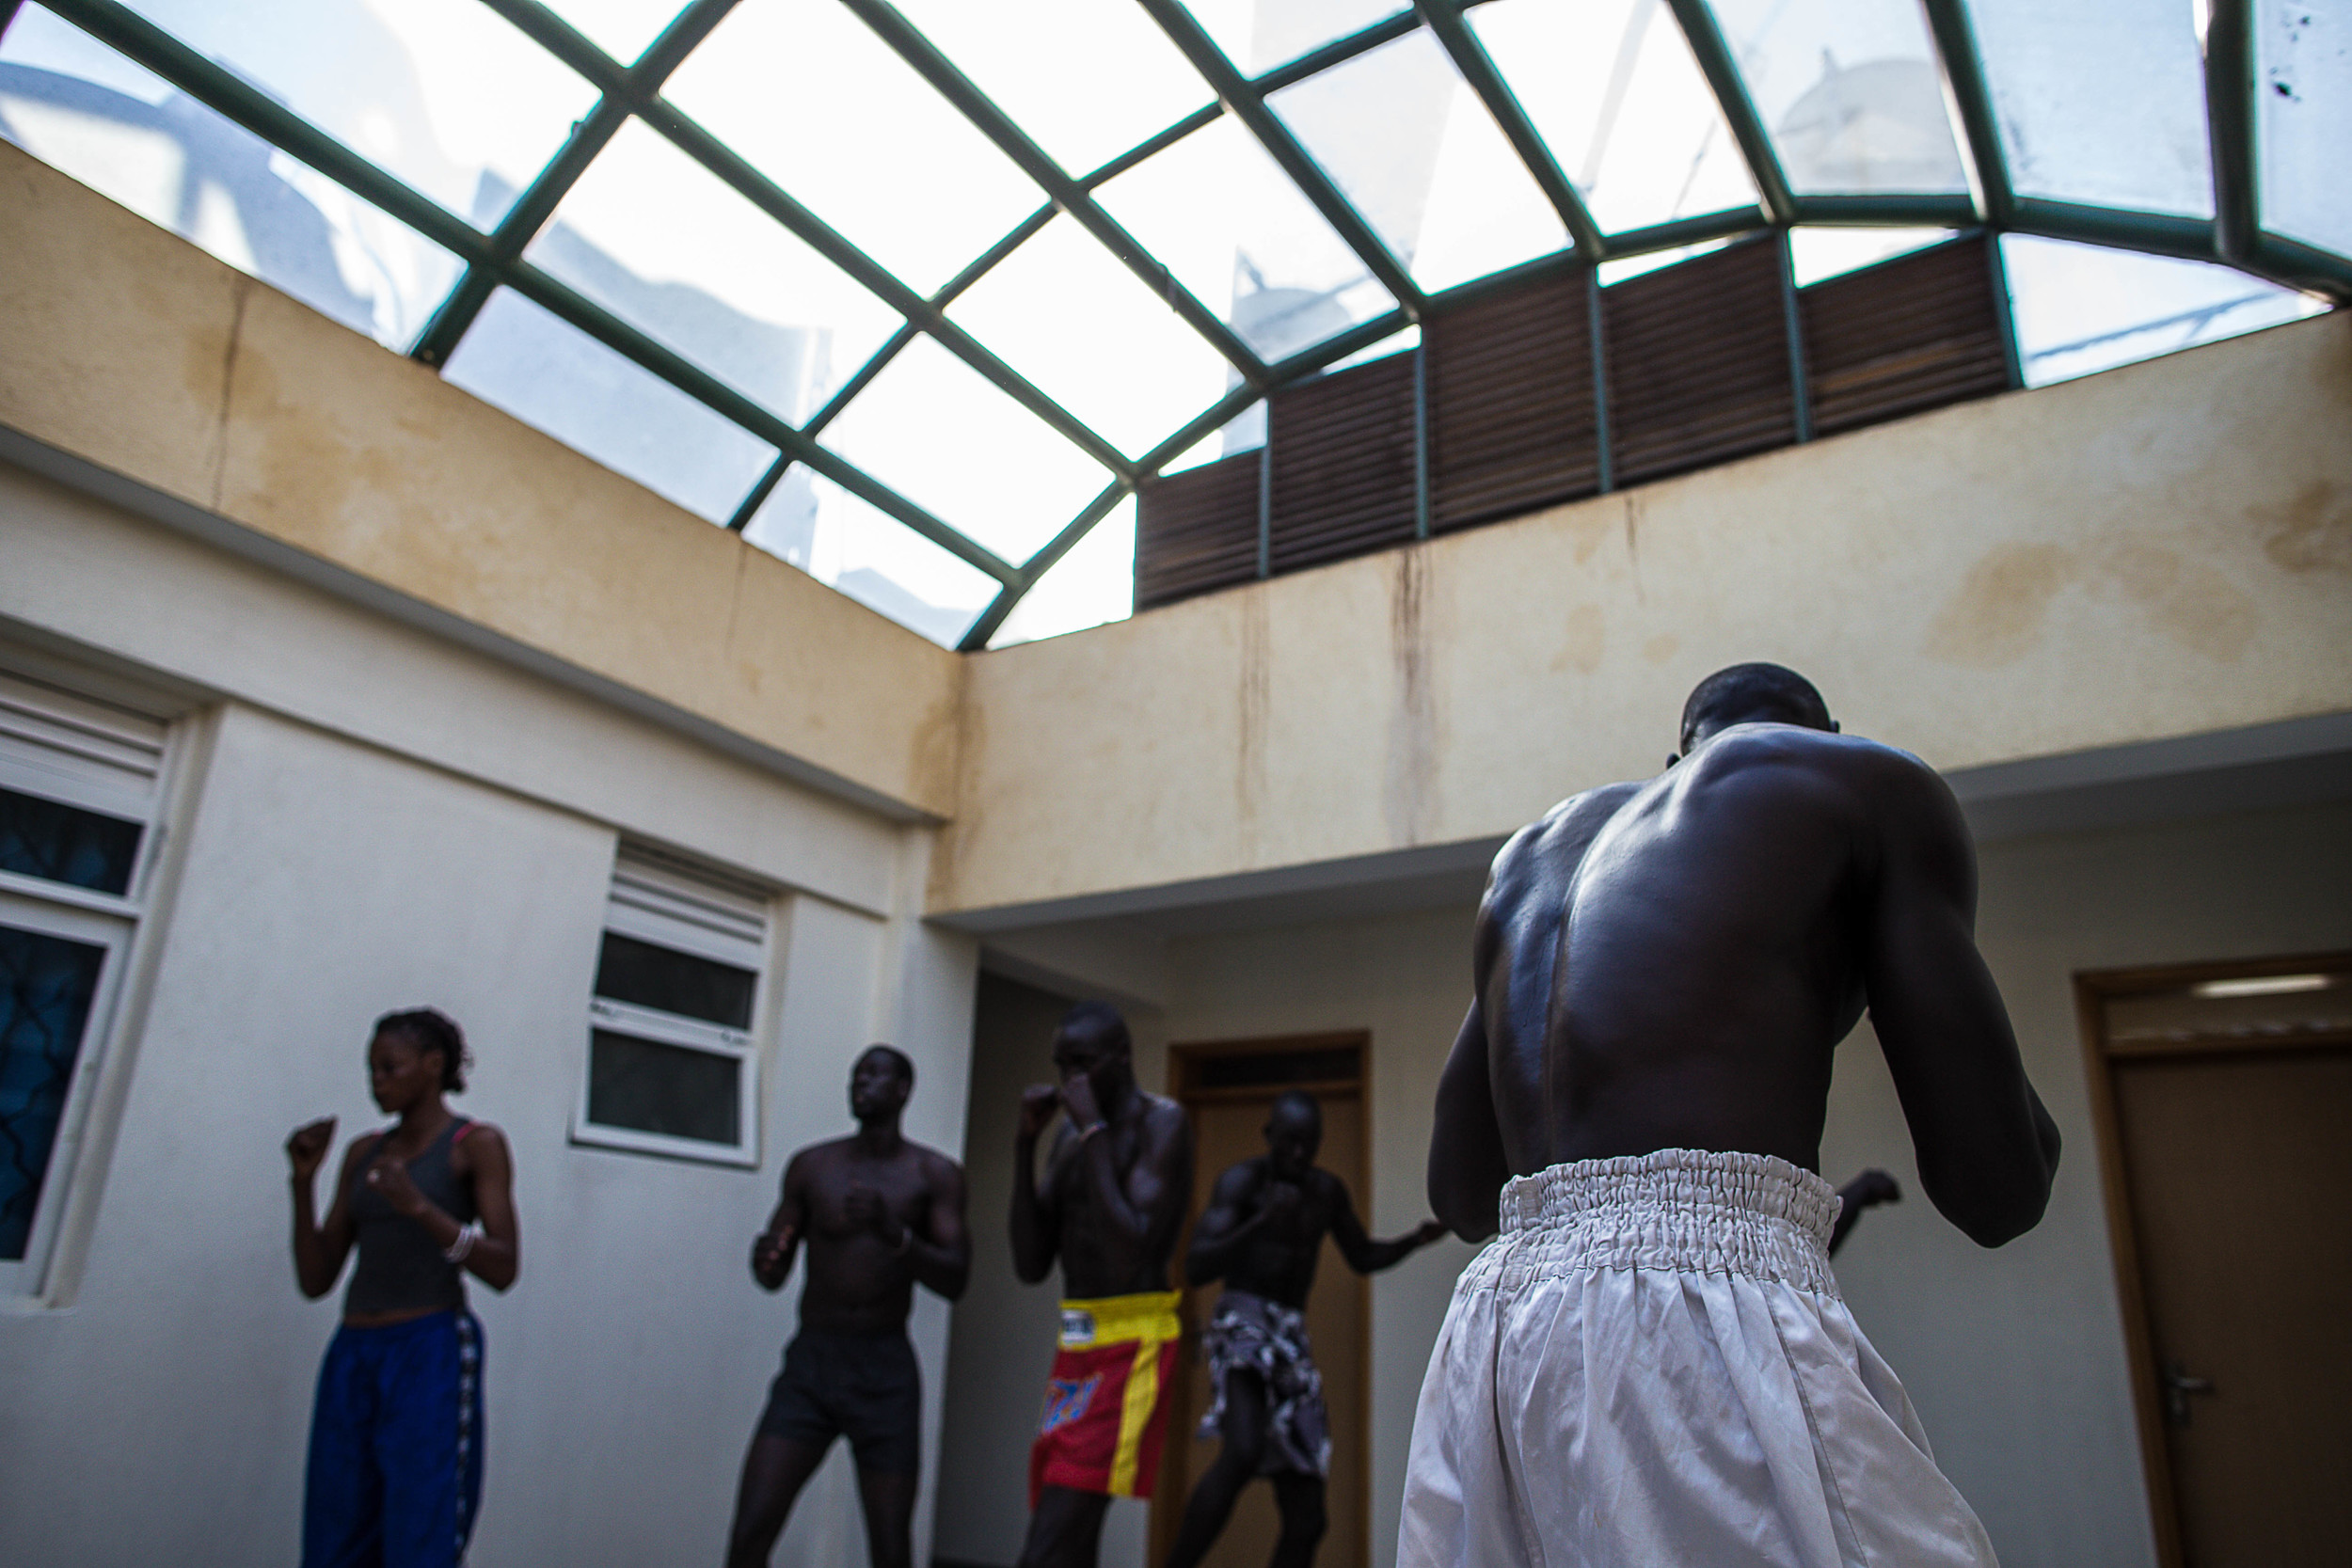 Fighters practice in an atrium of the hotel.